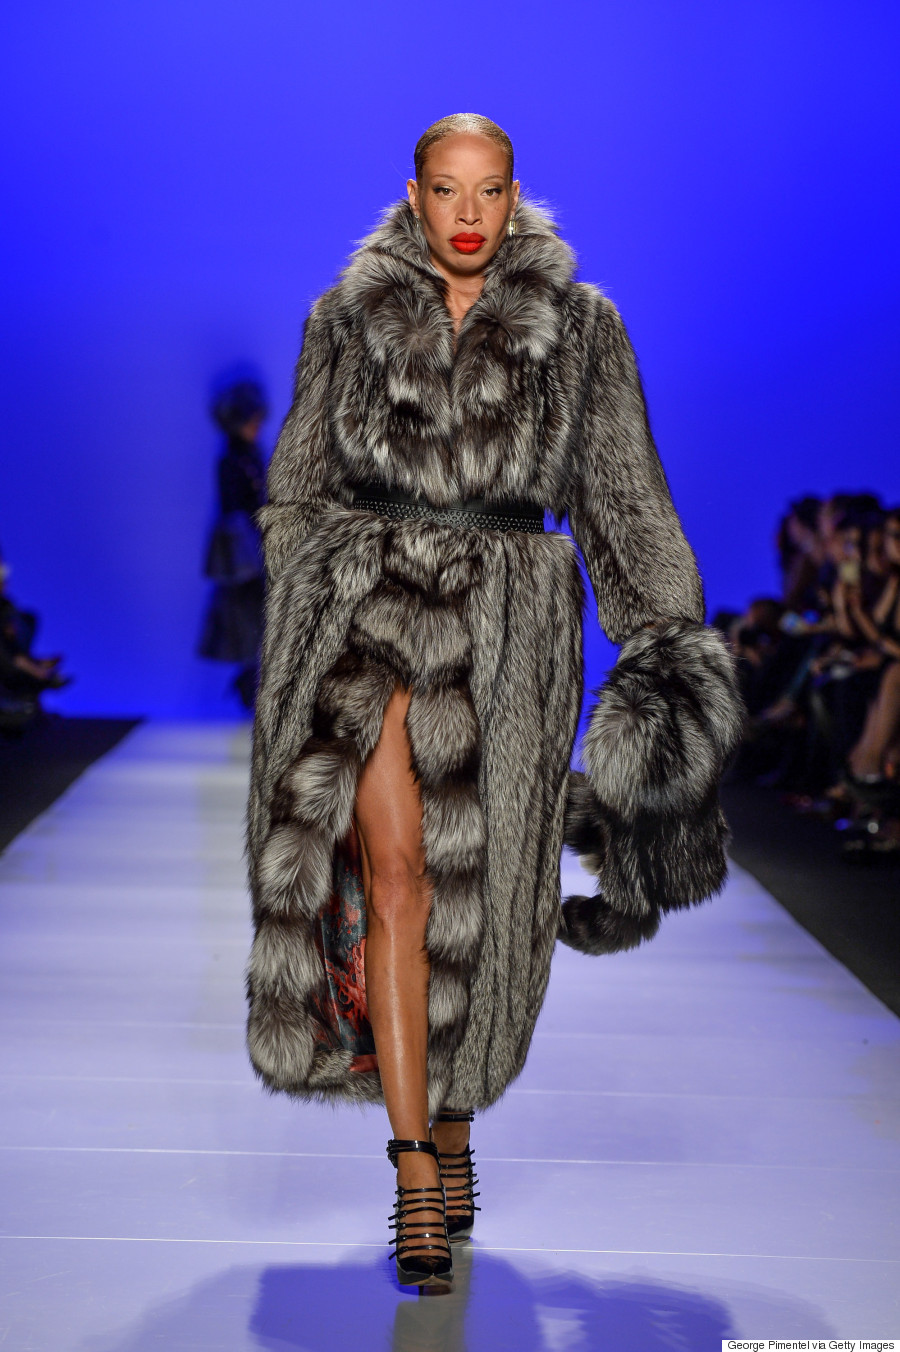 stacey mckenzie young